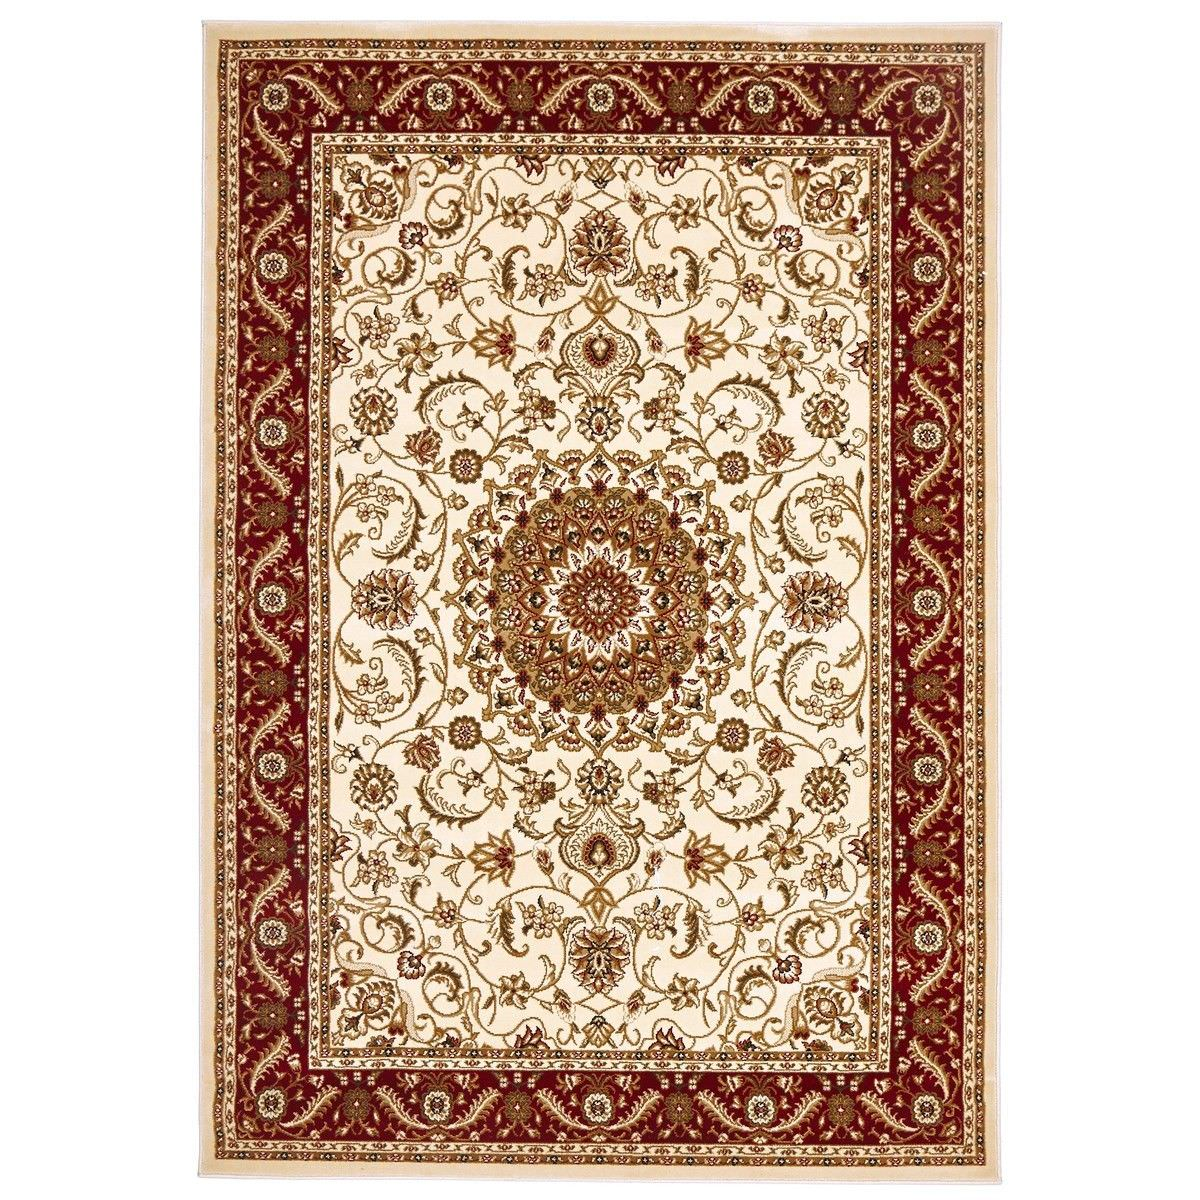 Sydney Medallion Turkish Made Oriental Rug, 230x160cm, Ivory / Red